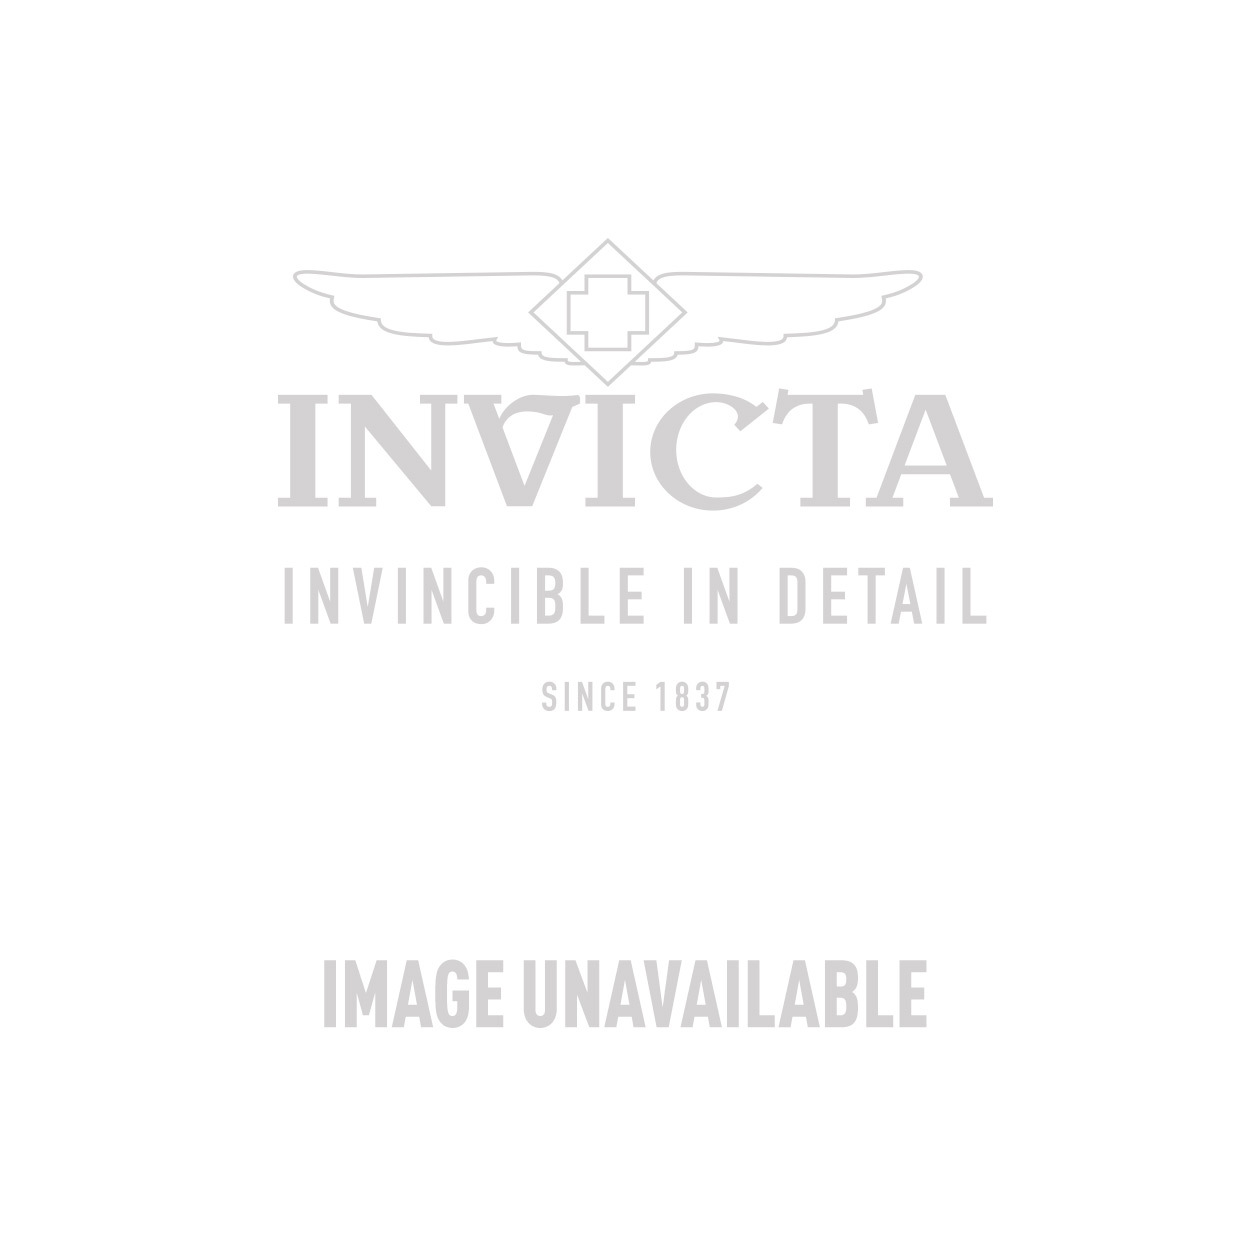 Invicta Angel Swiss Movement Quartz Watch - Stainless Steel case Stainless Steel band - Model 21419